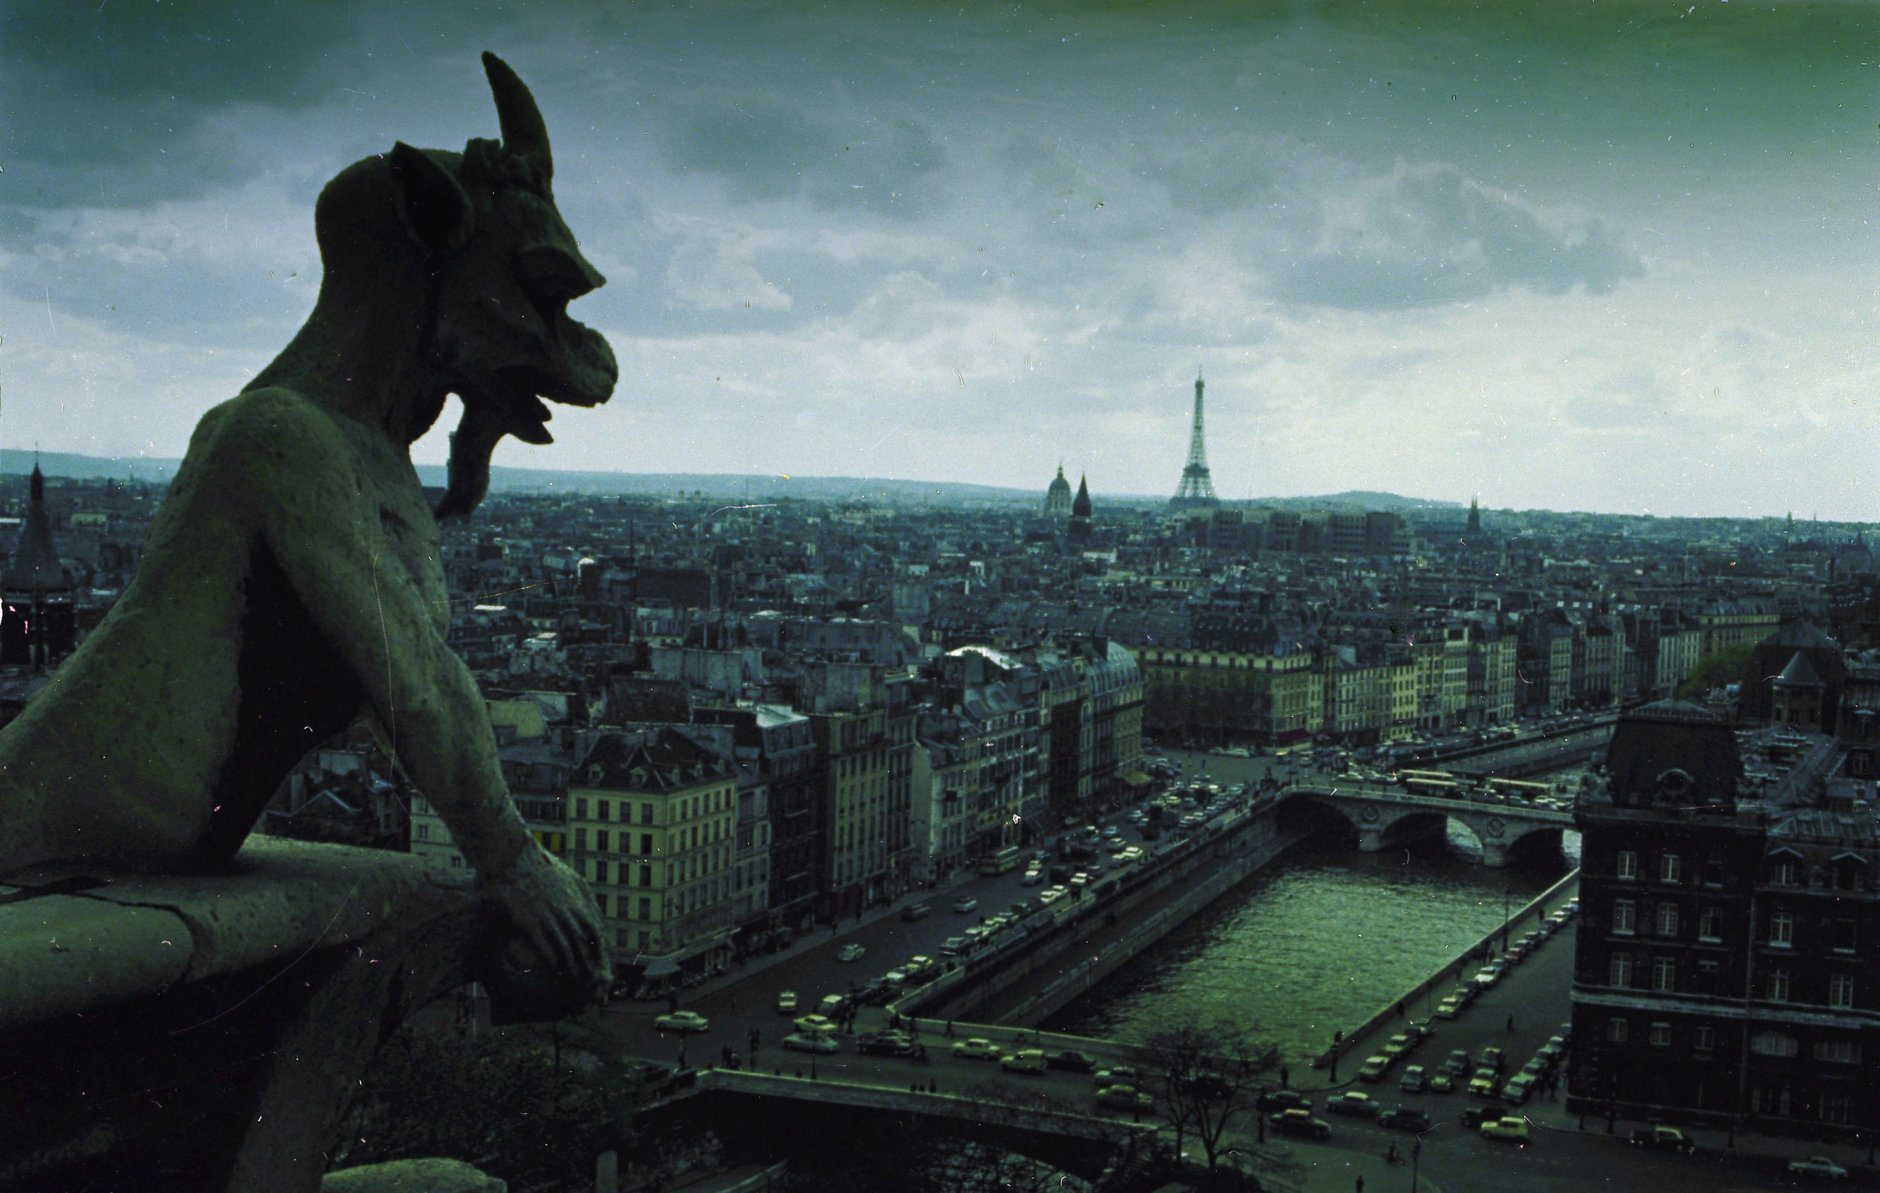 A Notre Dame gargoyle looks over the city of Paris, Dec. 1966.  In the background is the Eiffel Tower.  (AP Photo)